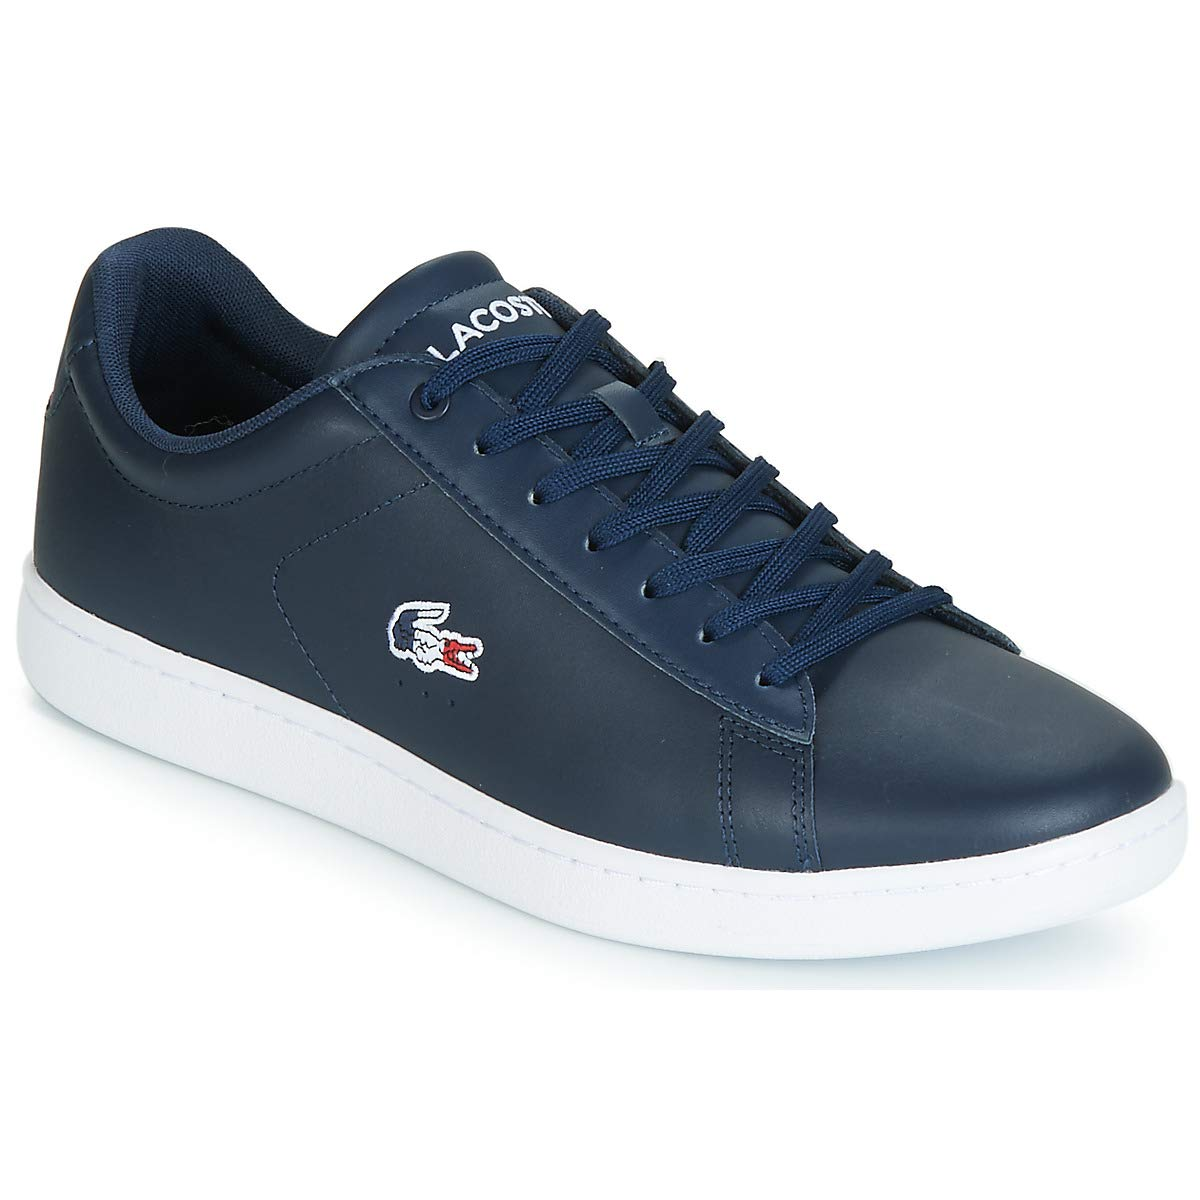 6ff8b46386a Lacoste 37SMA00137A2 Sneakers Homme